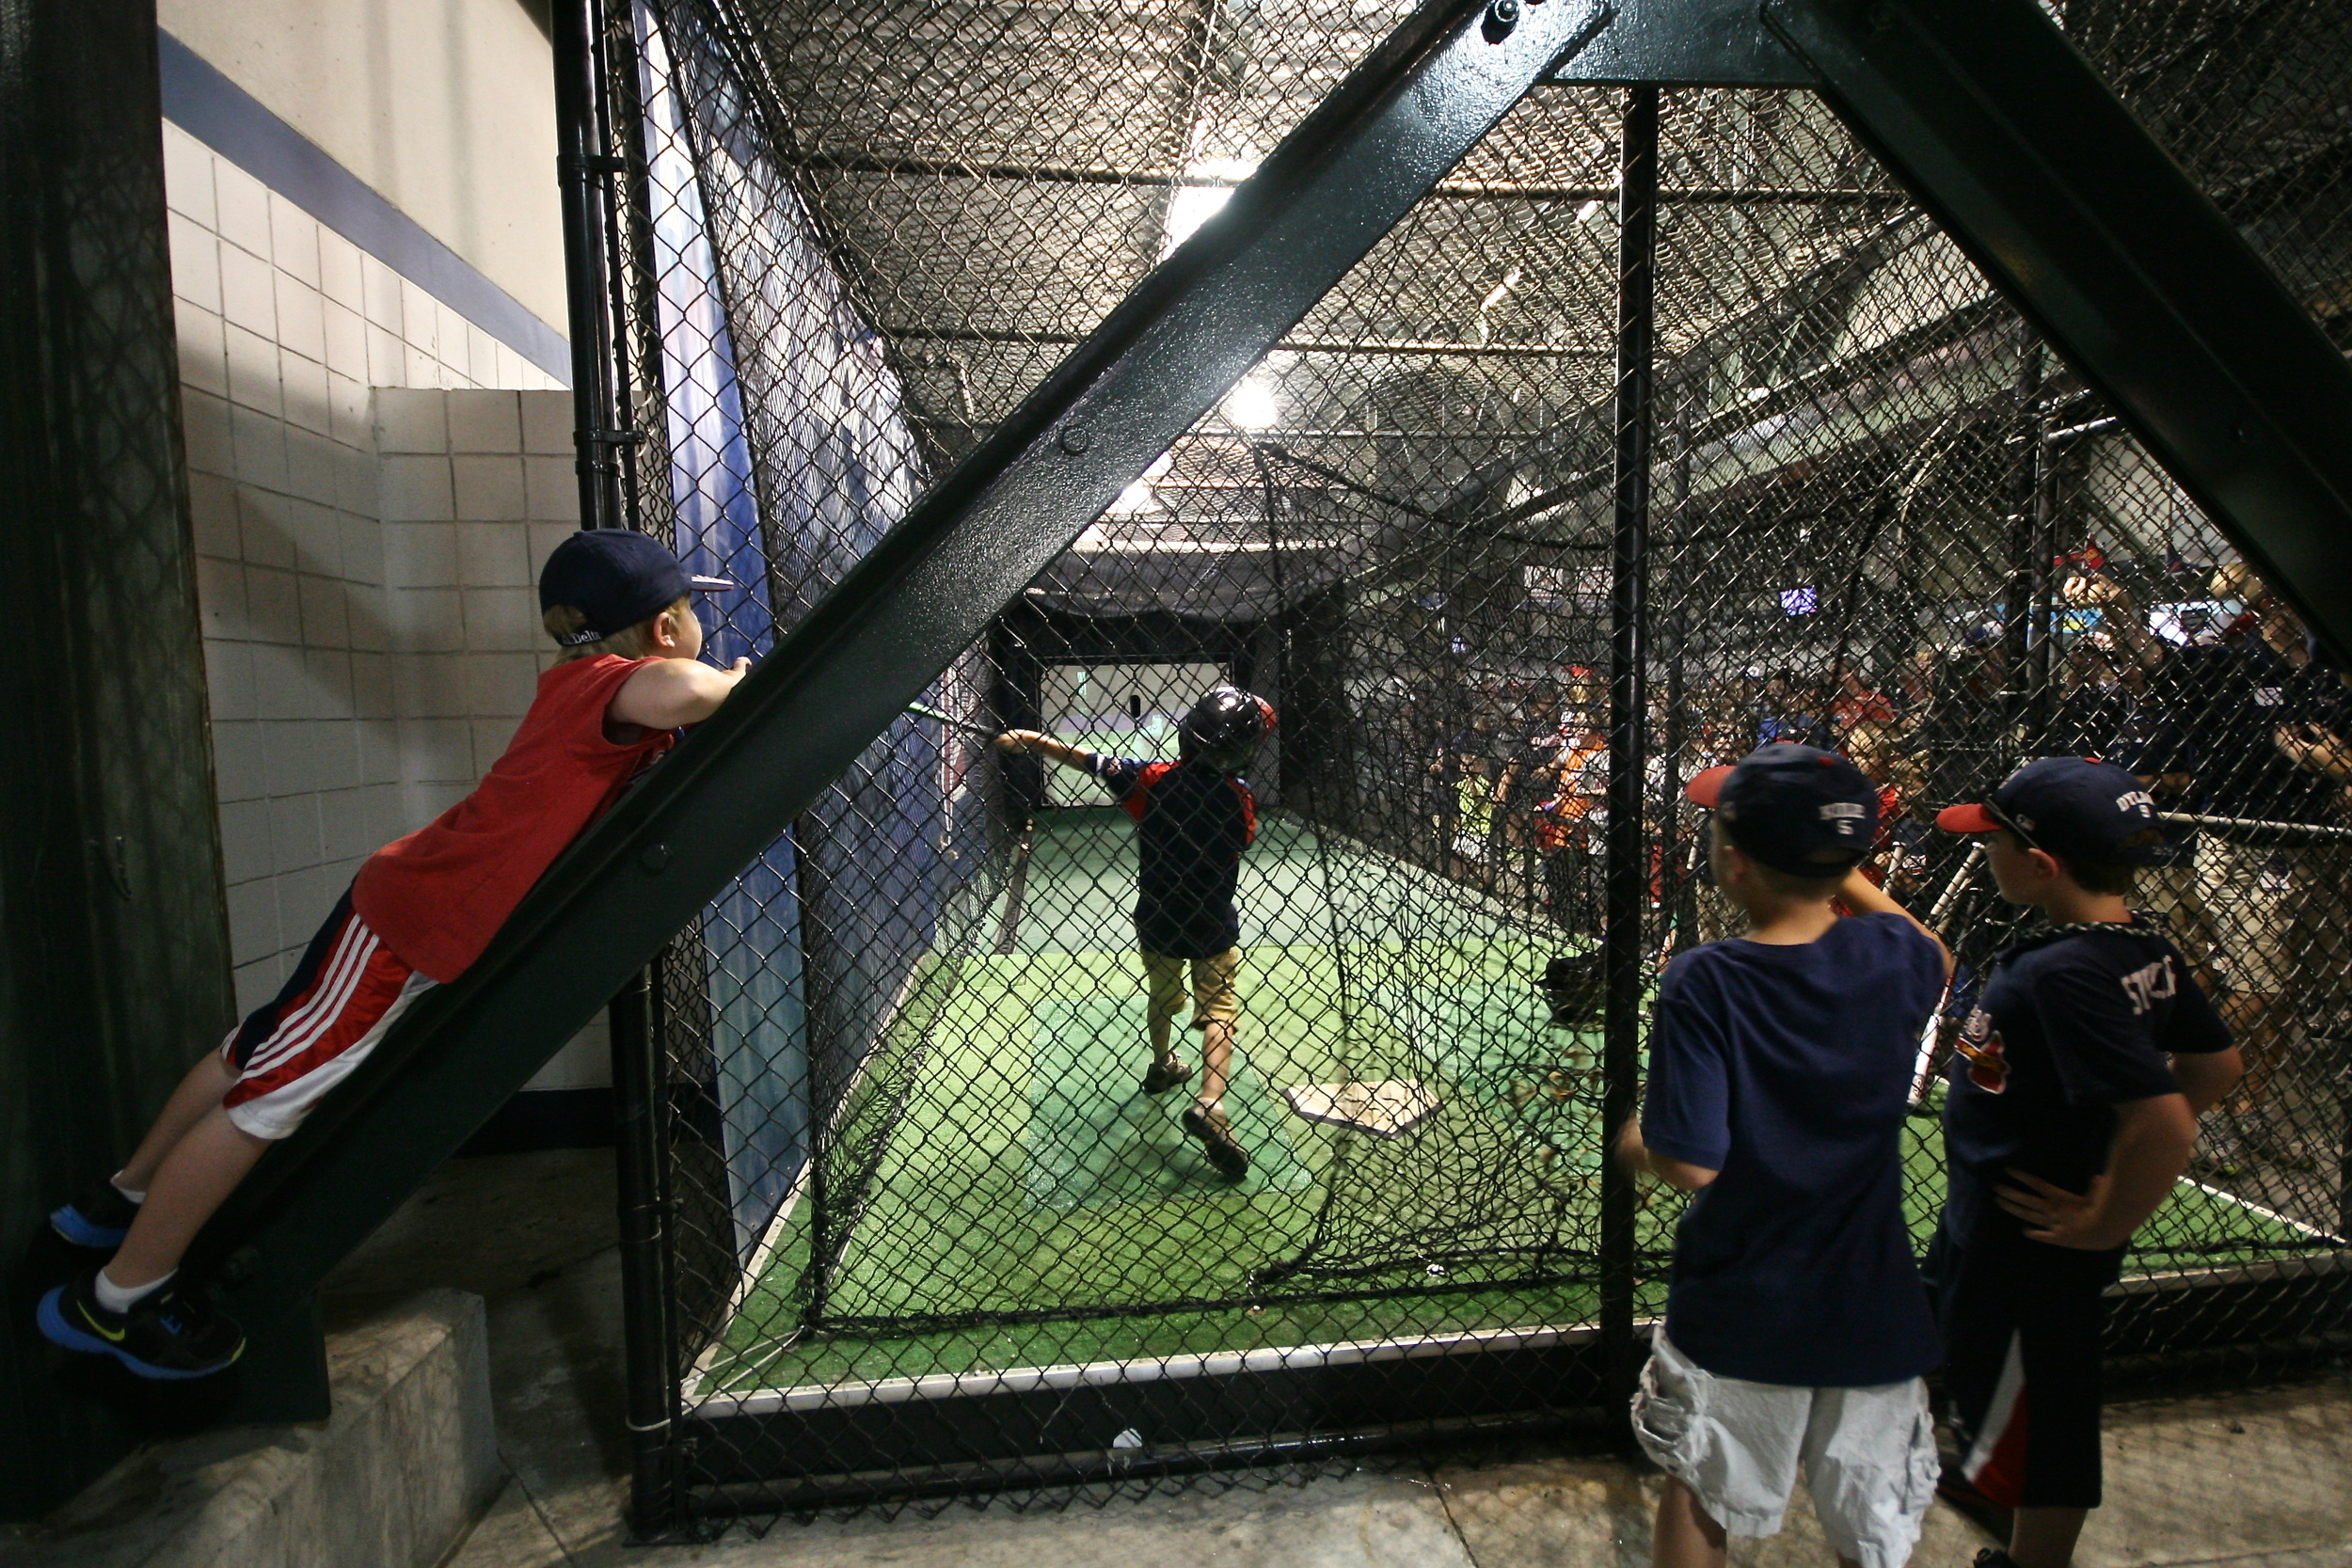 Kids hitting the batting cages